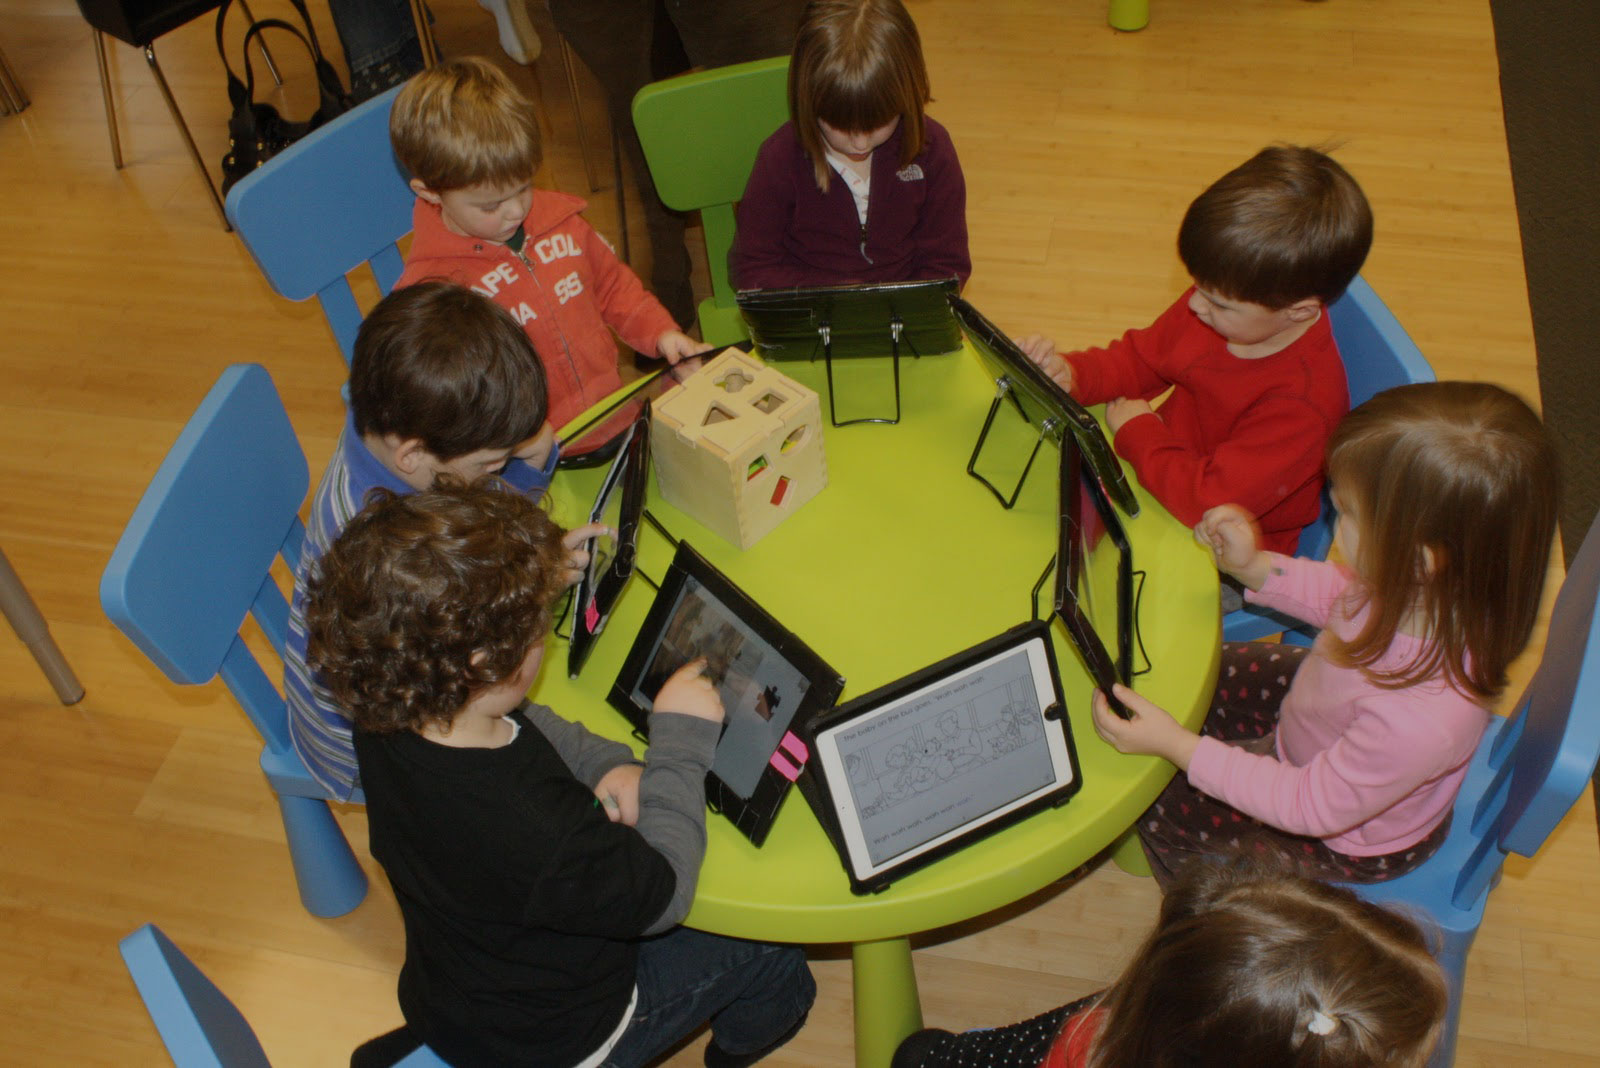 benefits of having mobile technology in the classroom